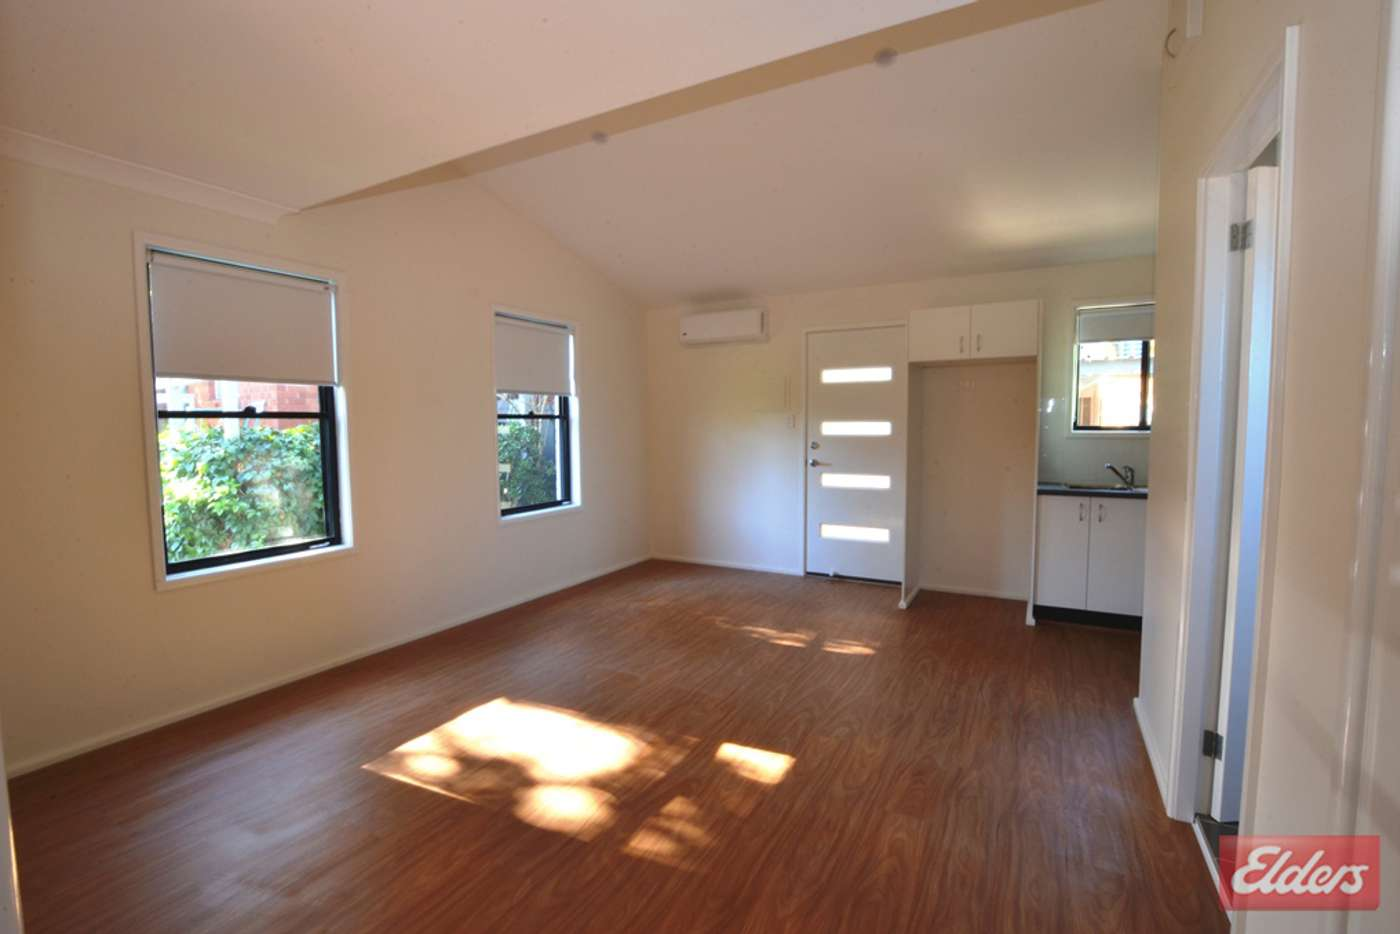 Main view of Homely house listing, 85A Valparaiso Avenue, Toongabbie NSW 2146